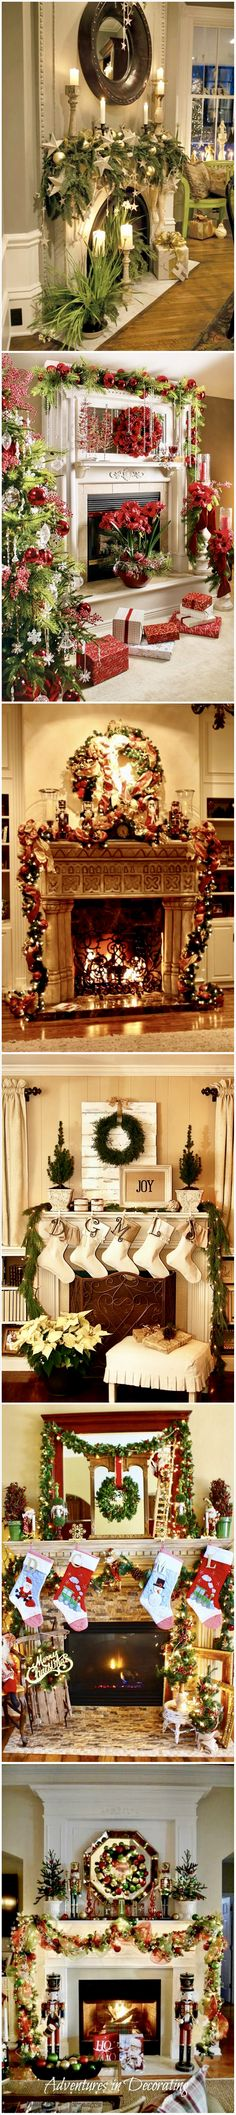 44 Exceptional Christmas Mantels and Mantelpiece Ideas Christmas Fireplace, Christmas Mantels, Christmas Love, Rustic Christmas, All Things Christmas, Christmas Holidays, Christmas Wreaths, Christmas Crafts, Christmas Tables